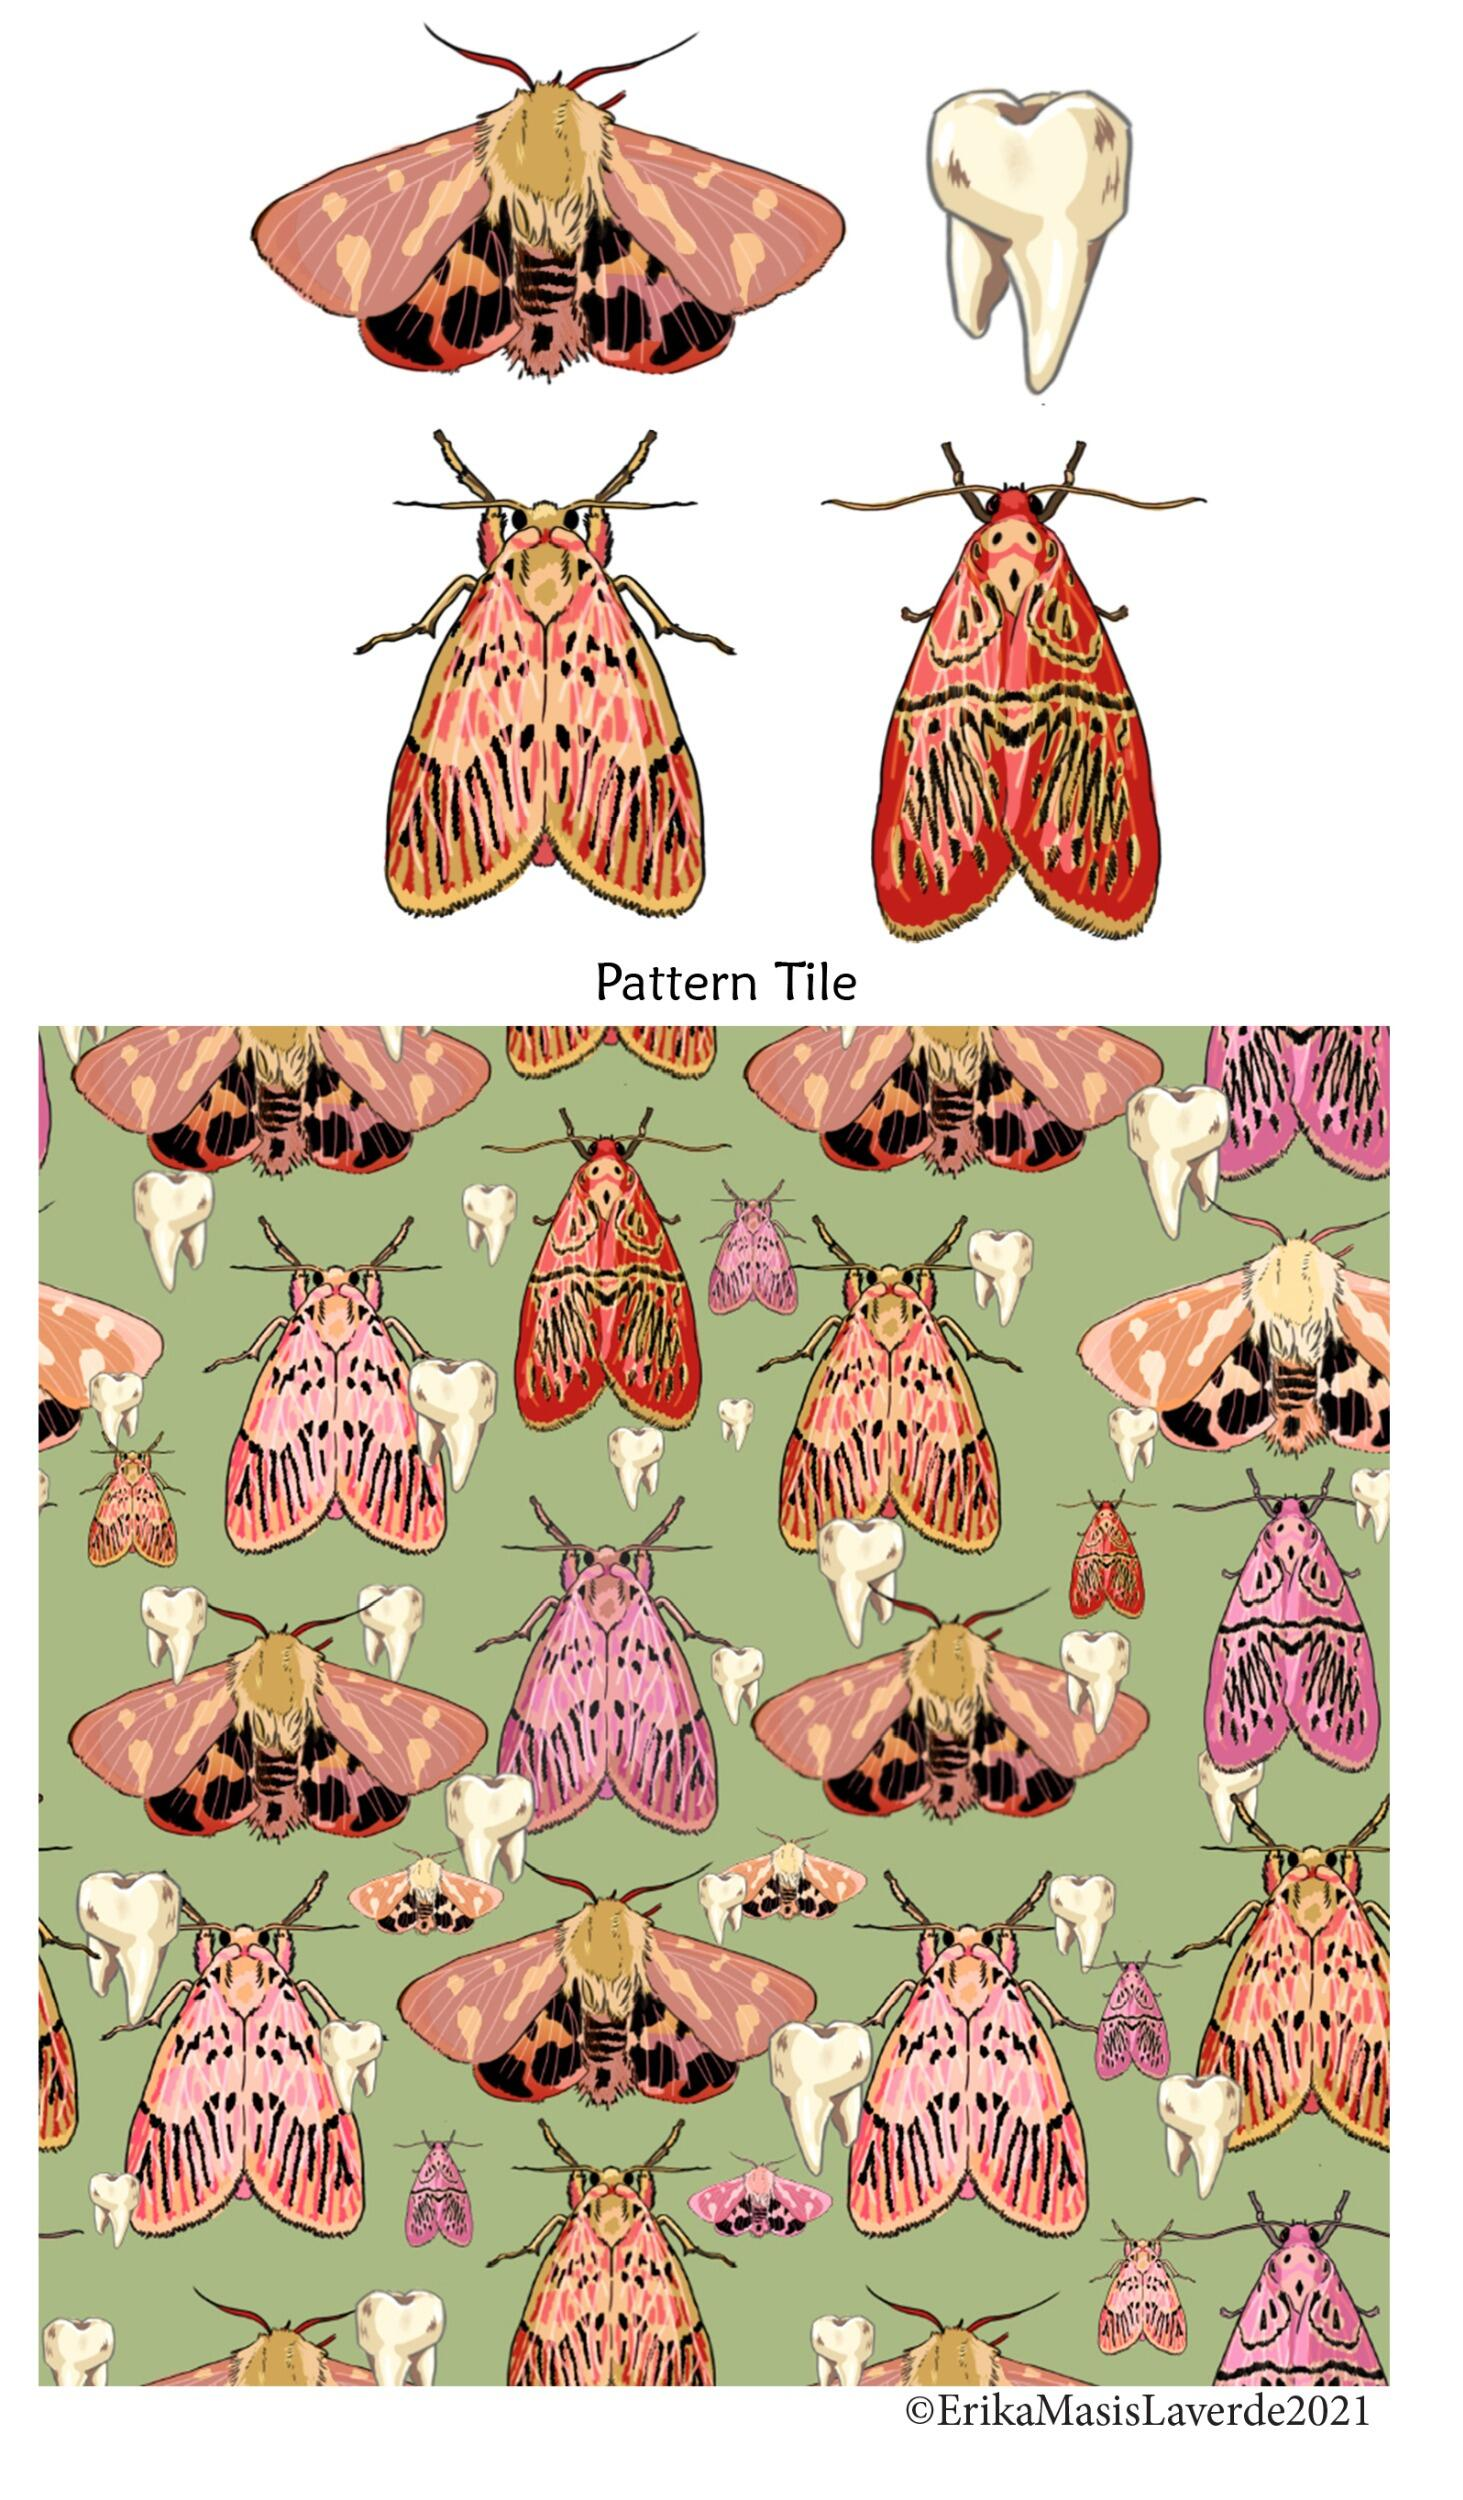 Pattern studies of butterflies by Erika Masis Laverde done in digital media as a part of a larger project for digital drawing.